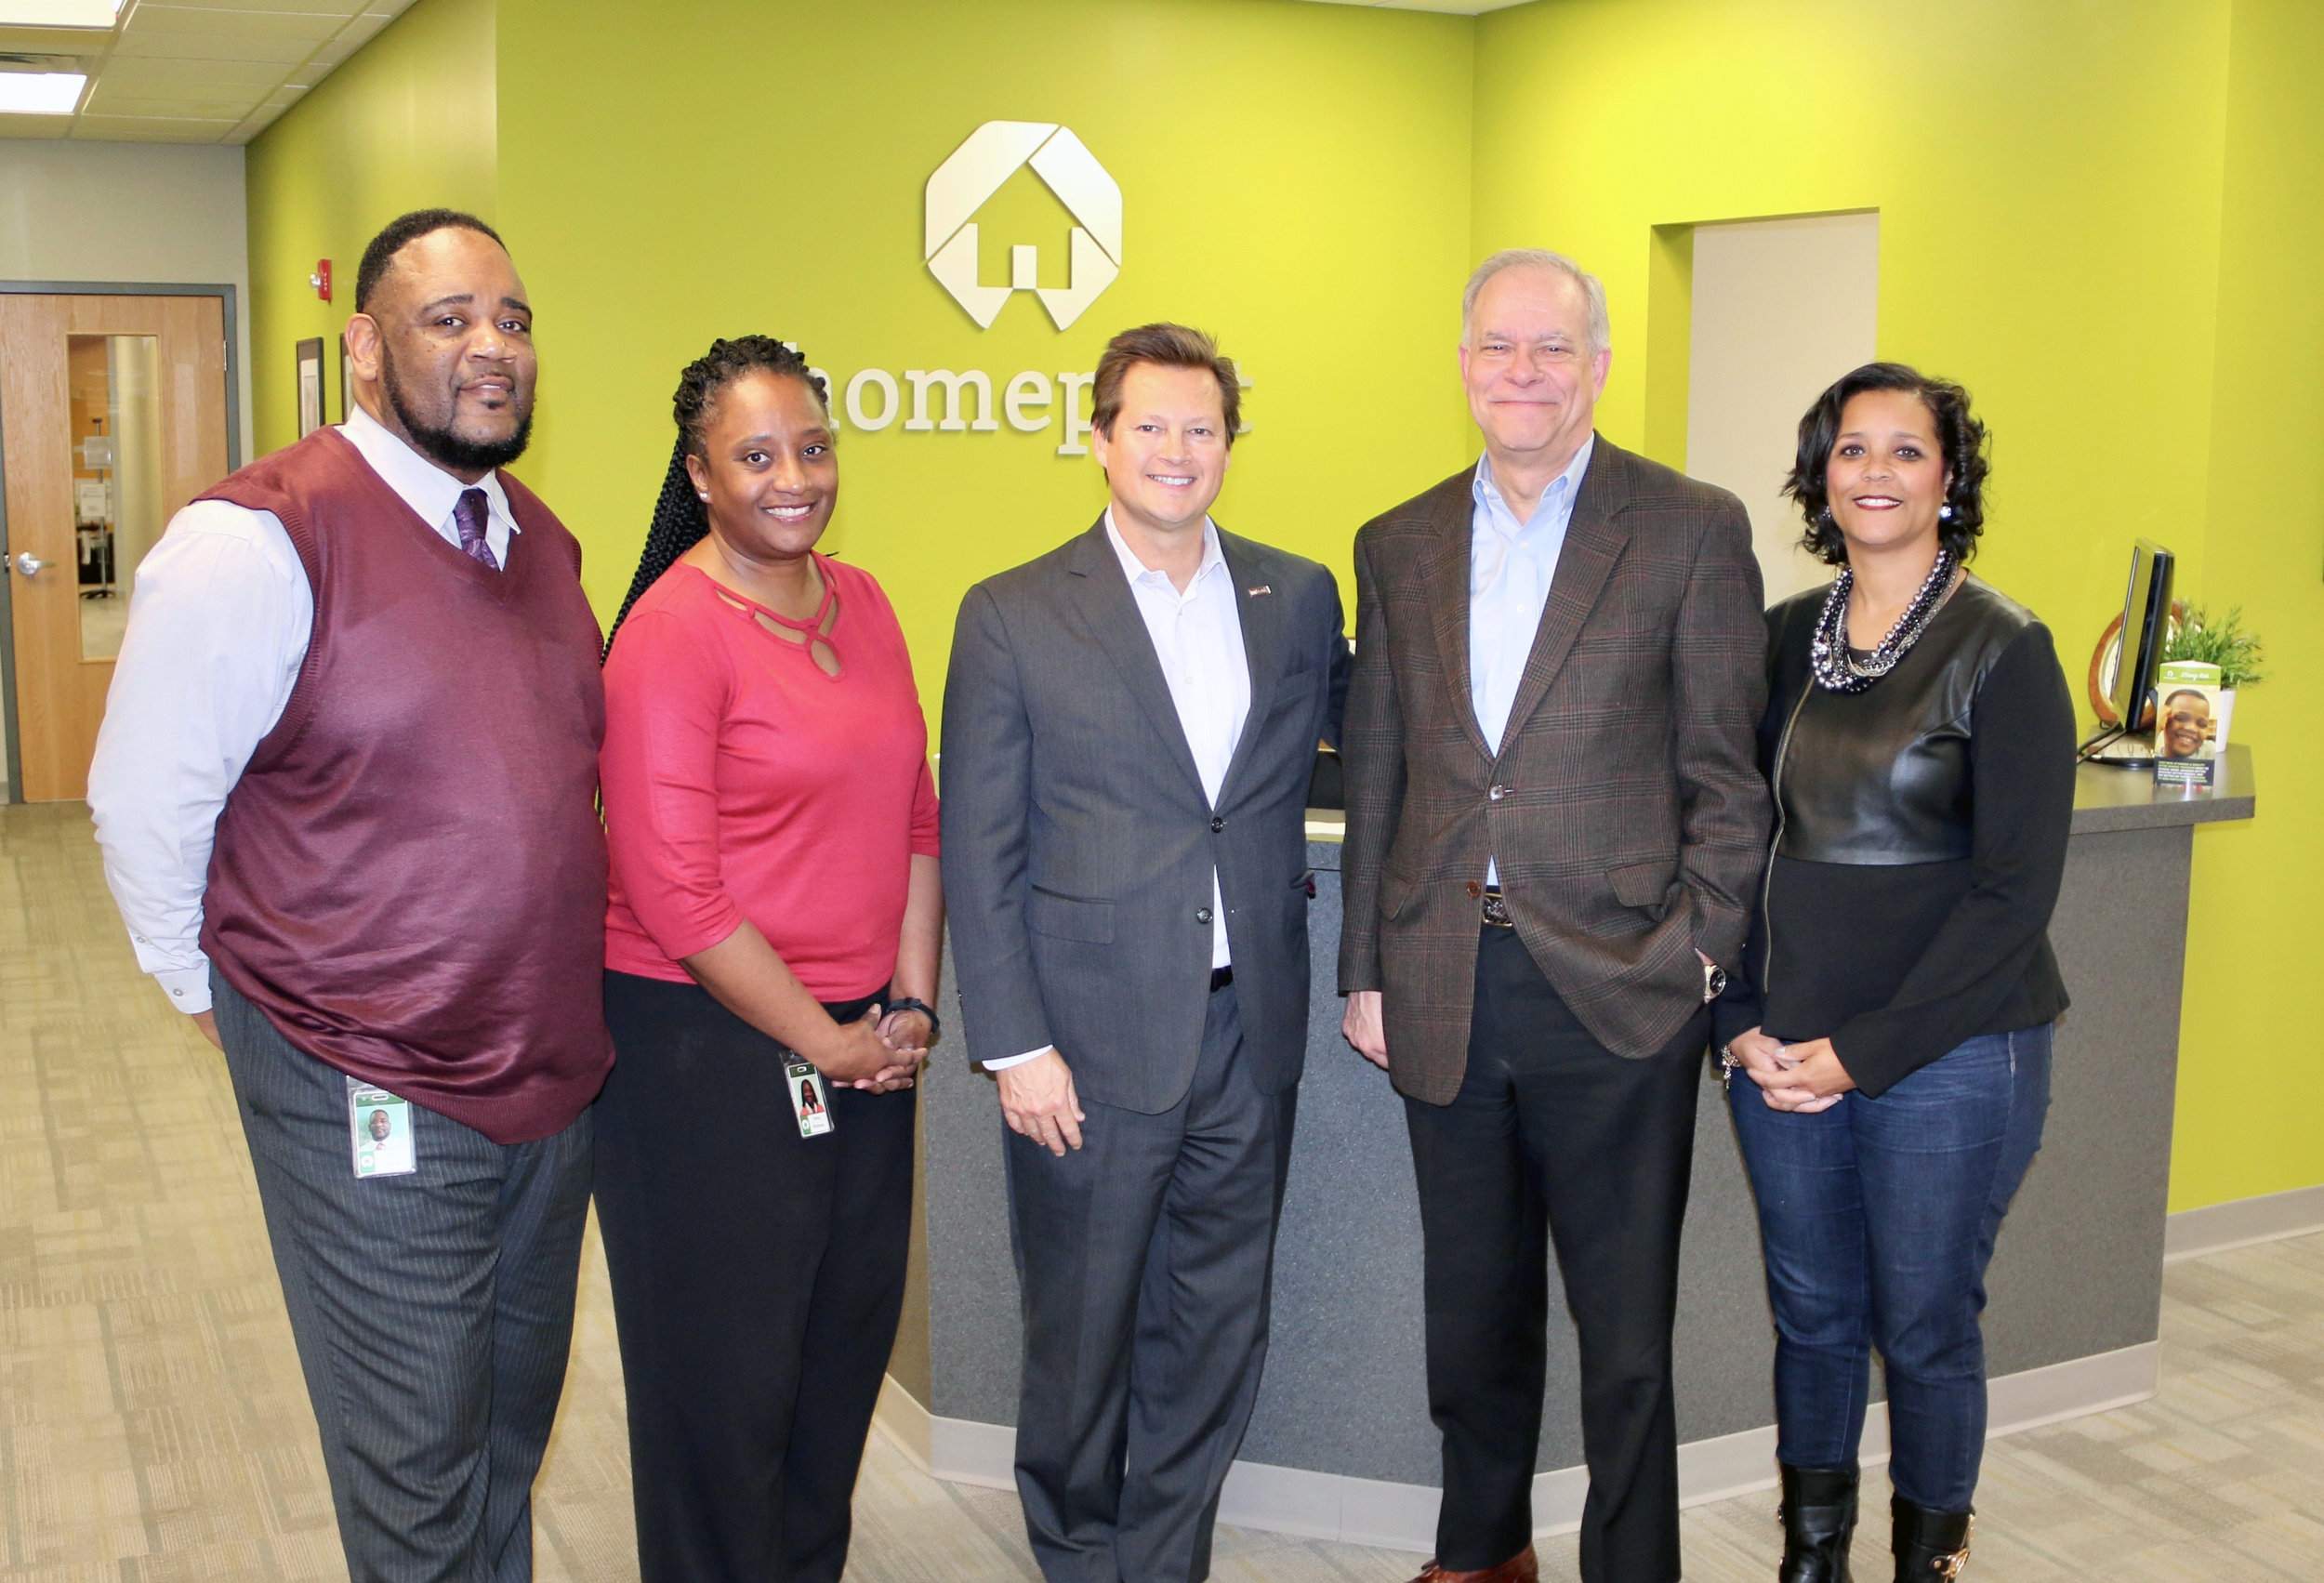 Steve Bennett, center, Central Ohio Market President of US Bank, stopped by Homeport headquarters to drop off a grant donation of $10,000 to support homebuyer education courses offered by Homeport. Accepting on behalf of Homeport were Kerrick Jackson, Netta Whitman, on the left, and Bruce Luecke and Laverne Price on the right.